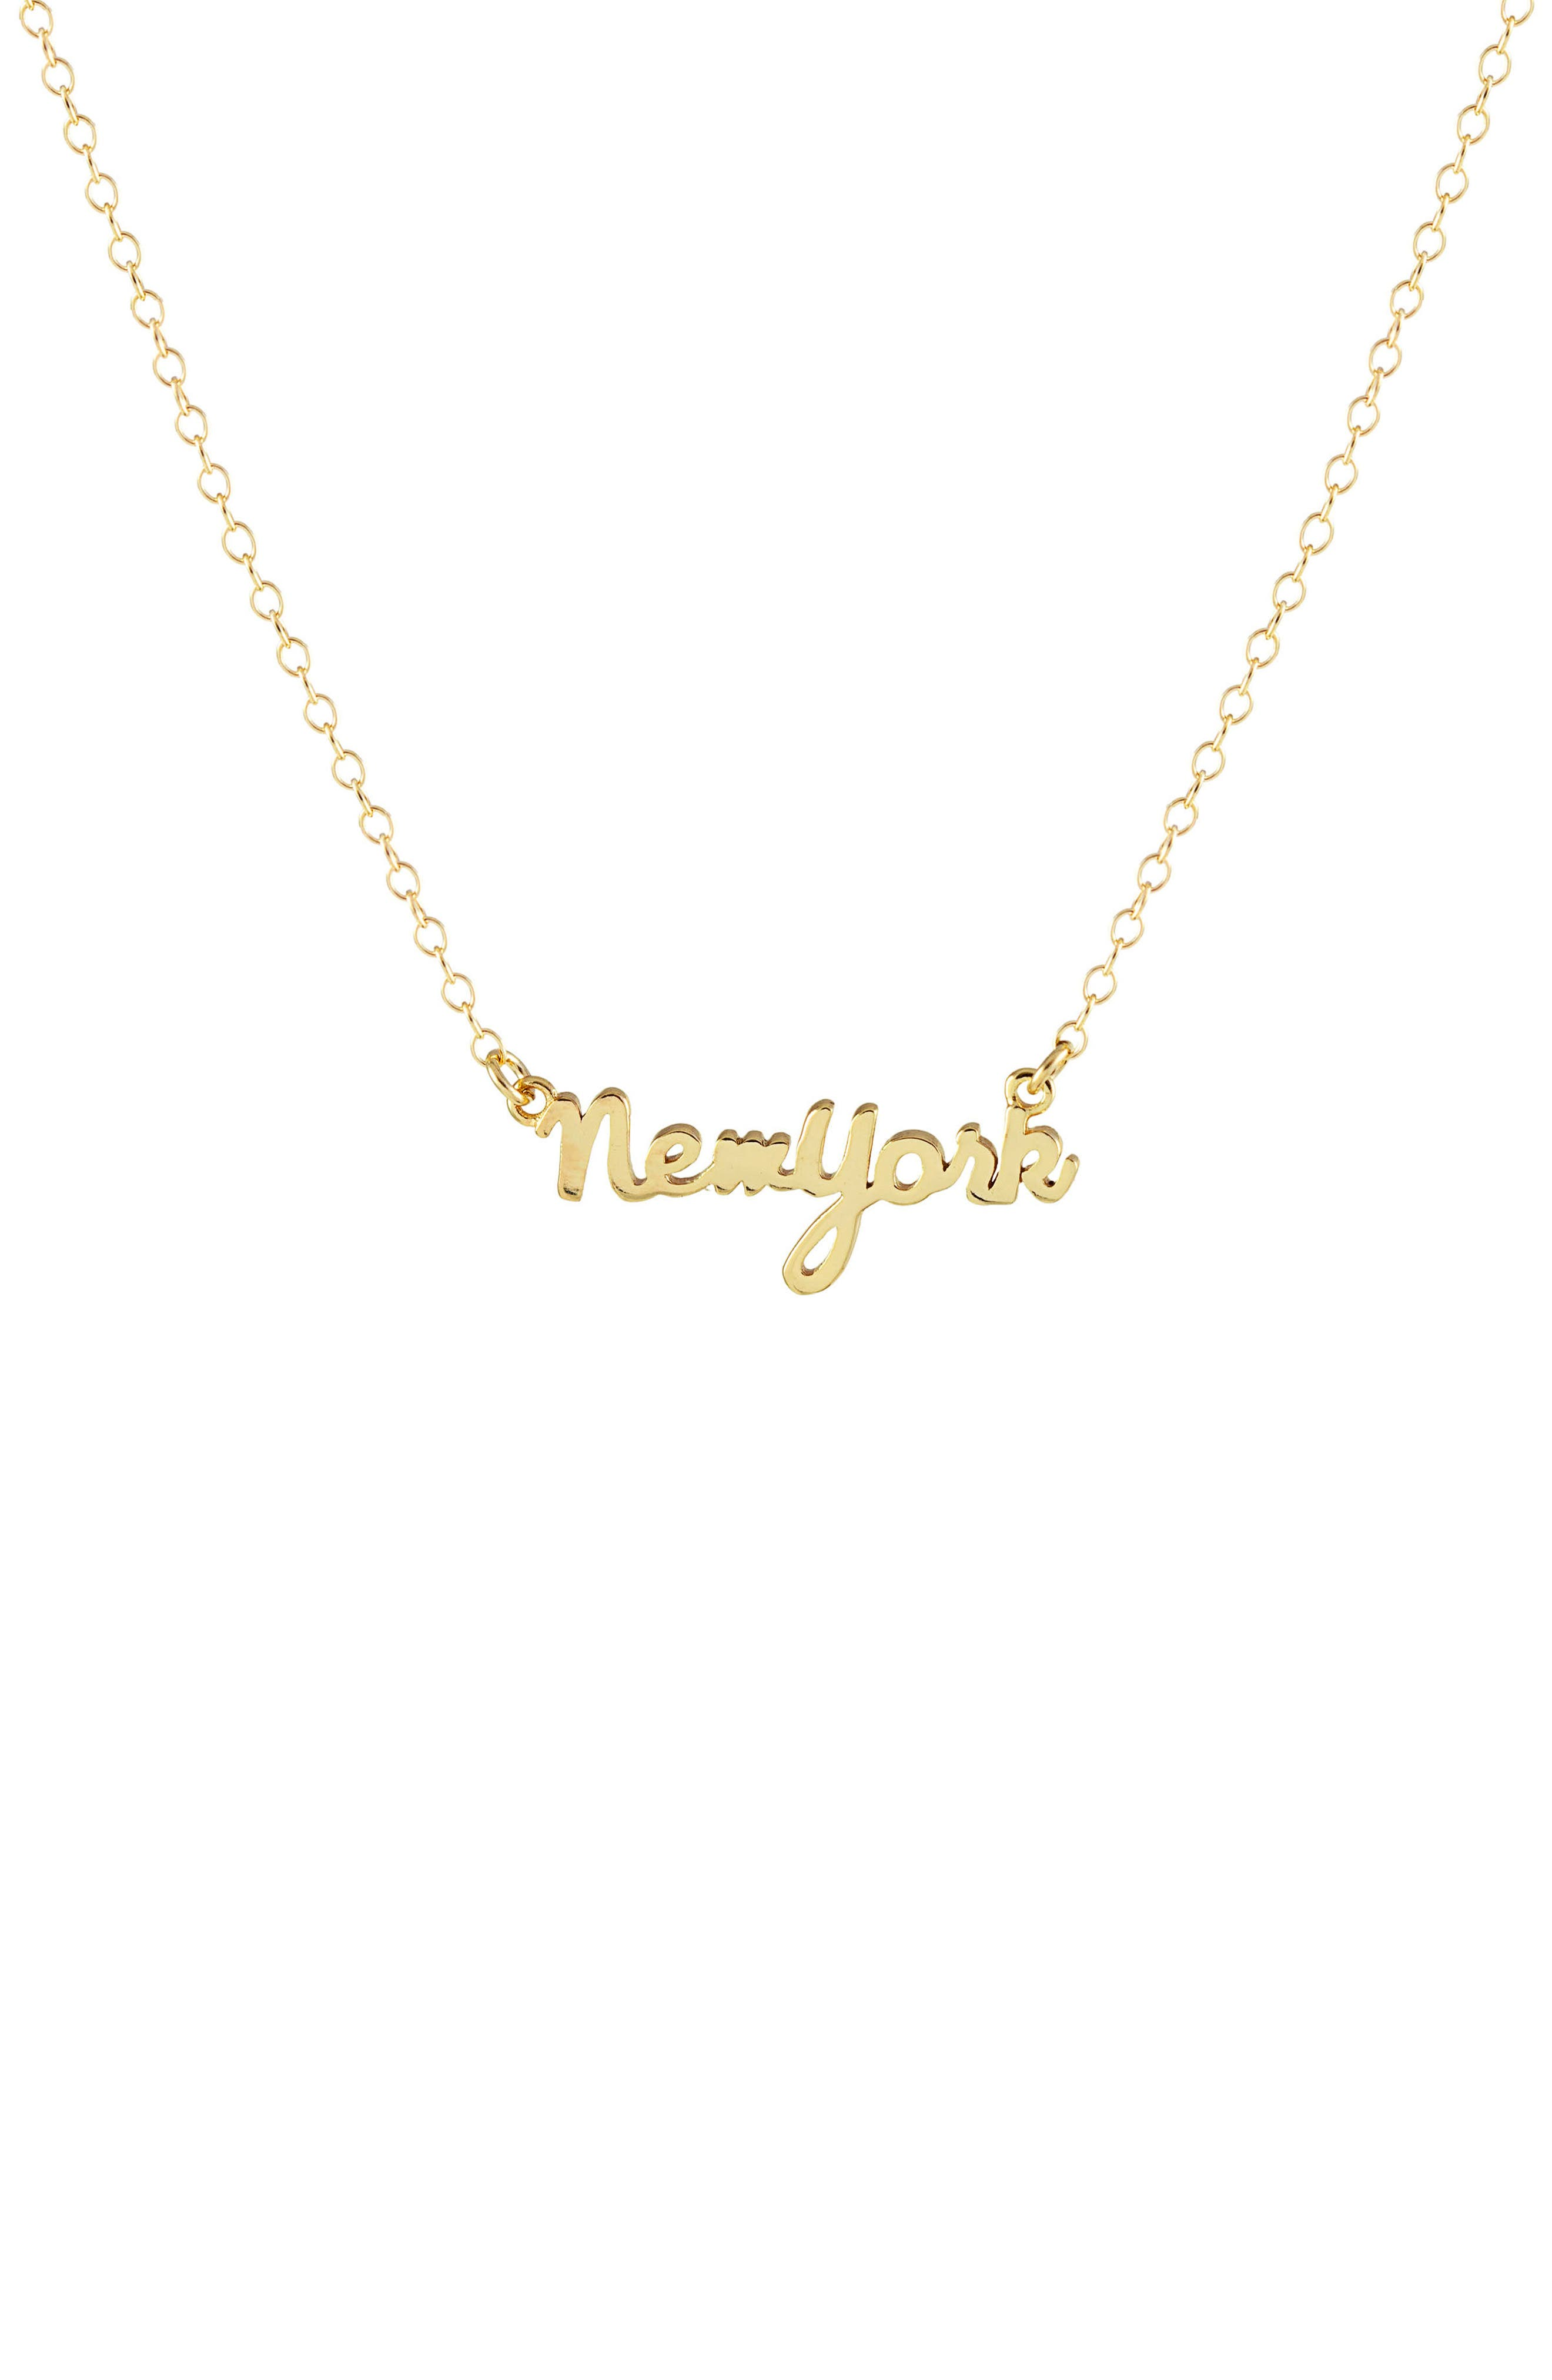 Solid State Charm Necklace,                             Main thumbnail 1, color,                             New York - Gold